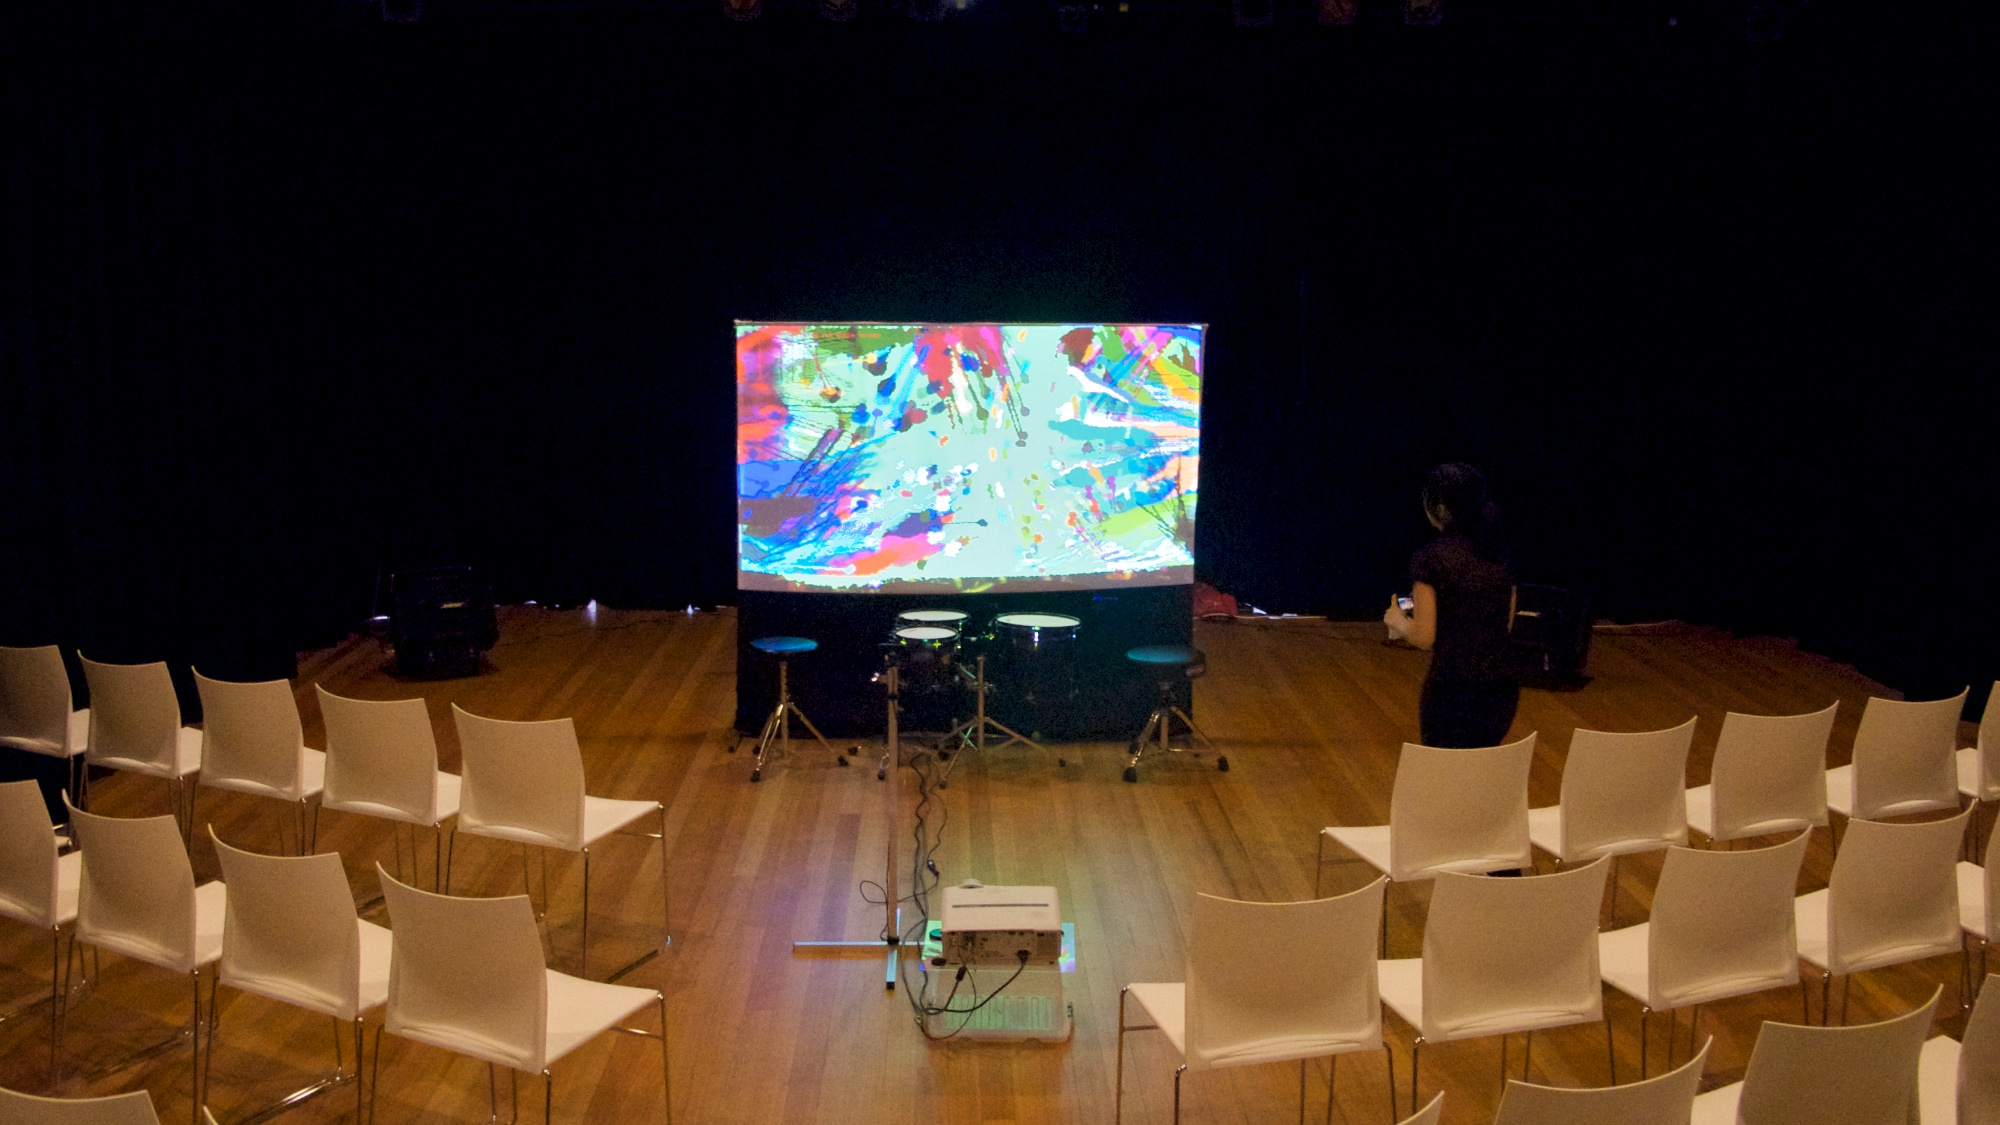 The stage setup for Strike on Stage at Belconnen Arts Centre, Canberra.